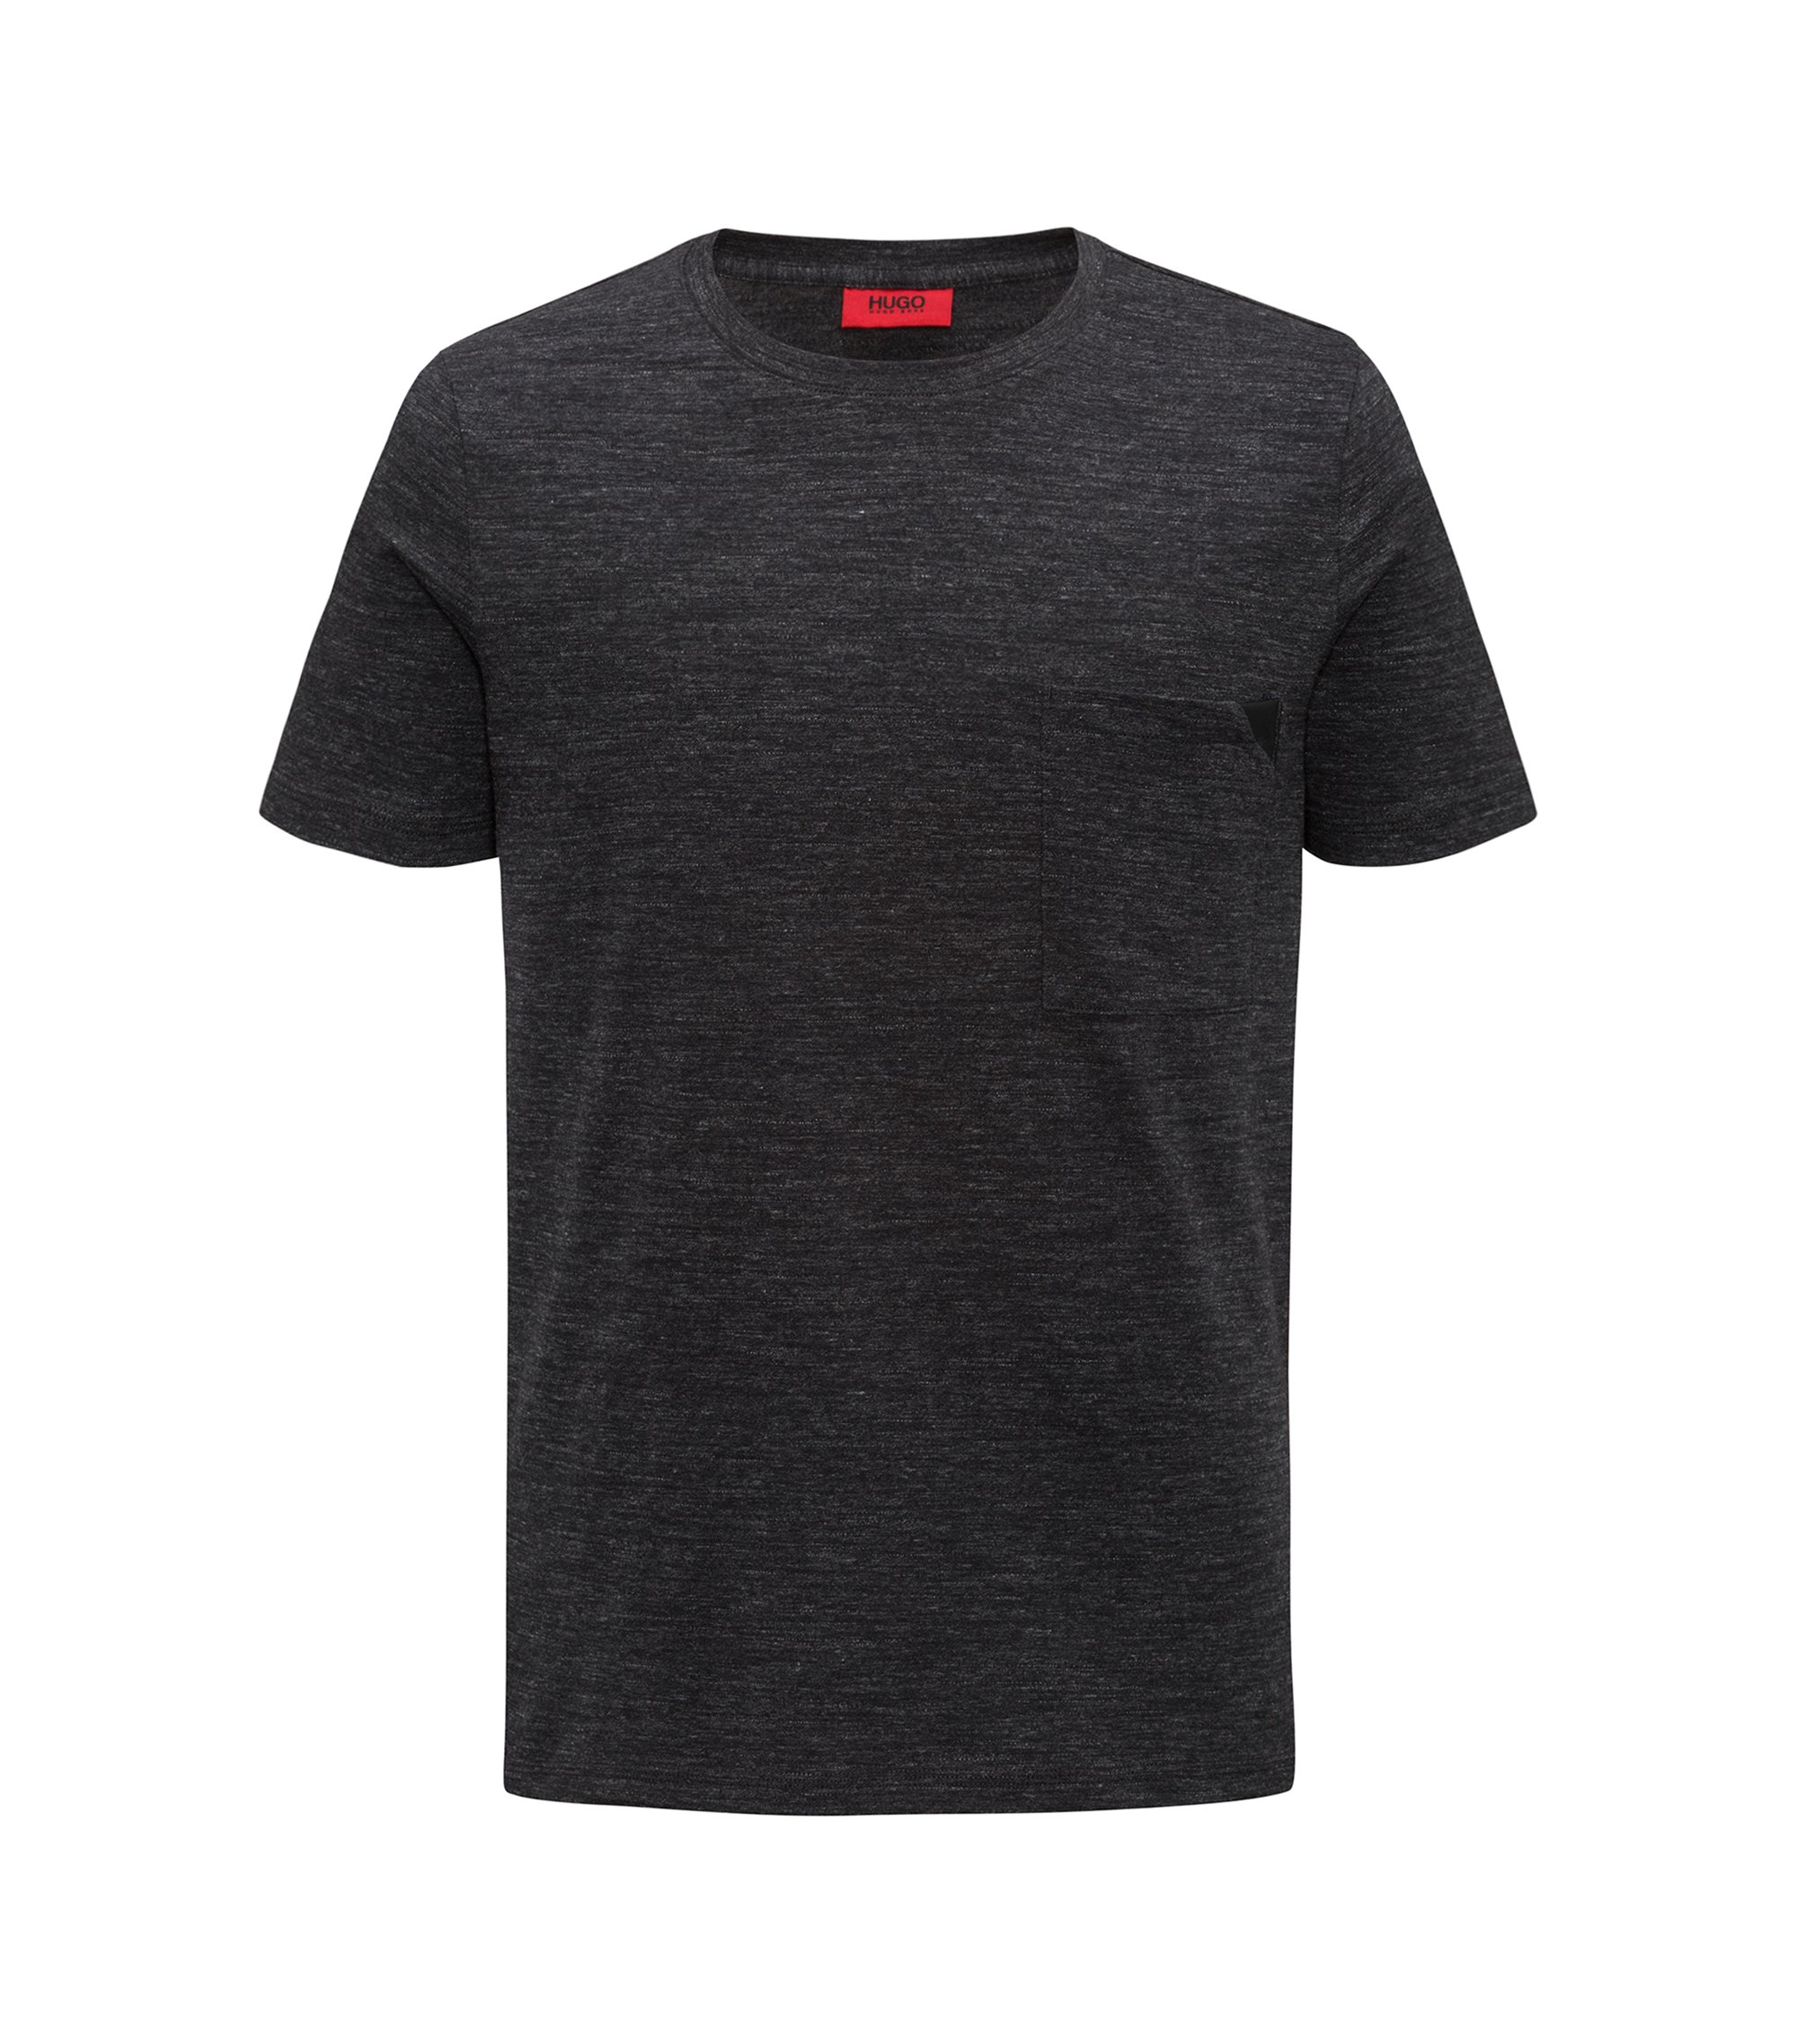 Short-sleeved T-shirt in mélange cotton, Black